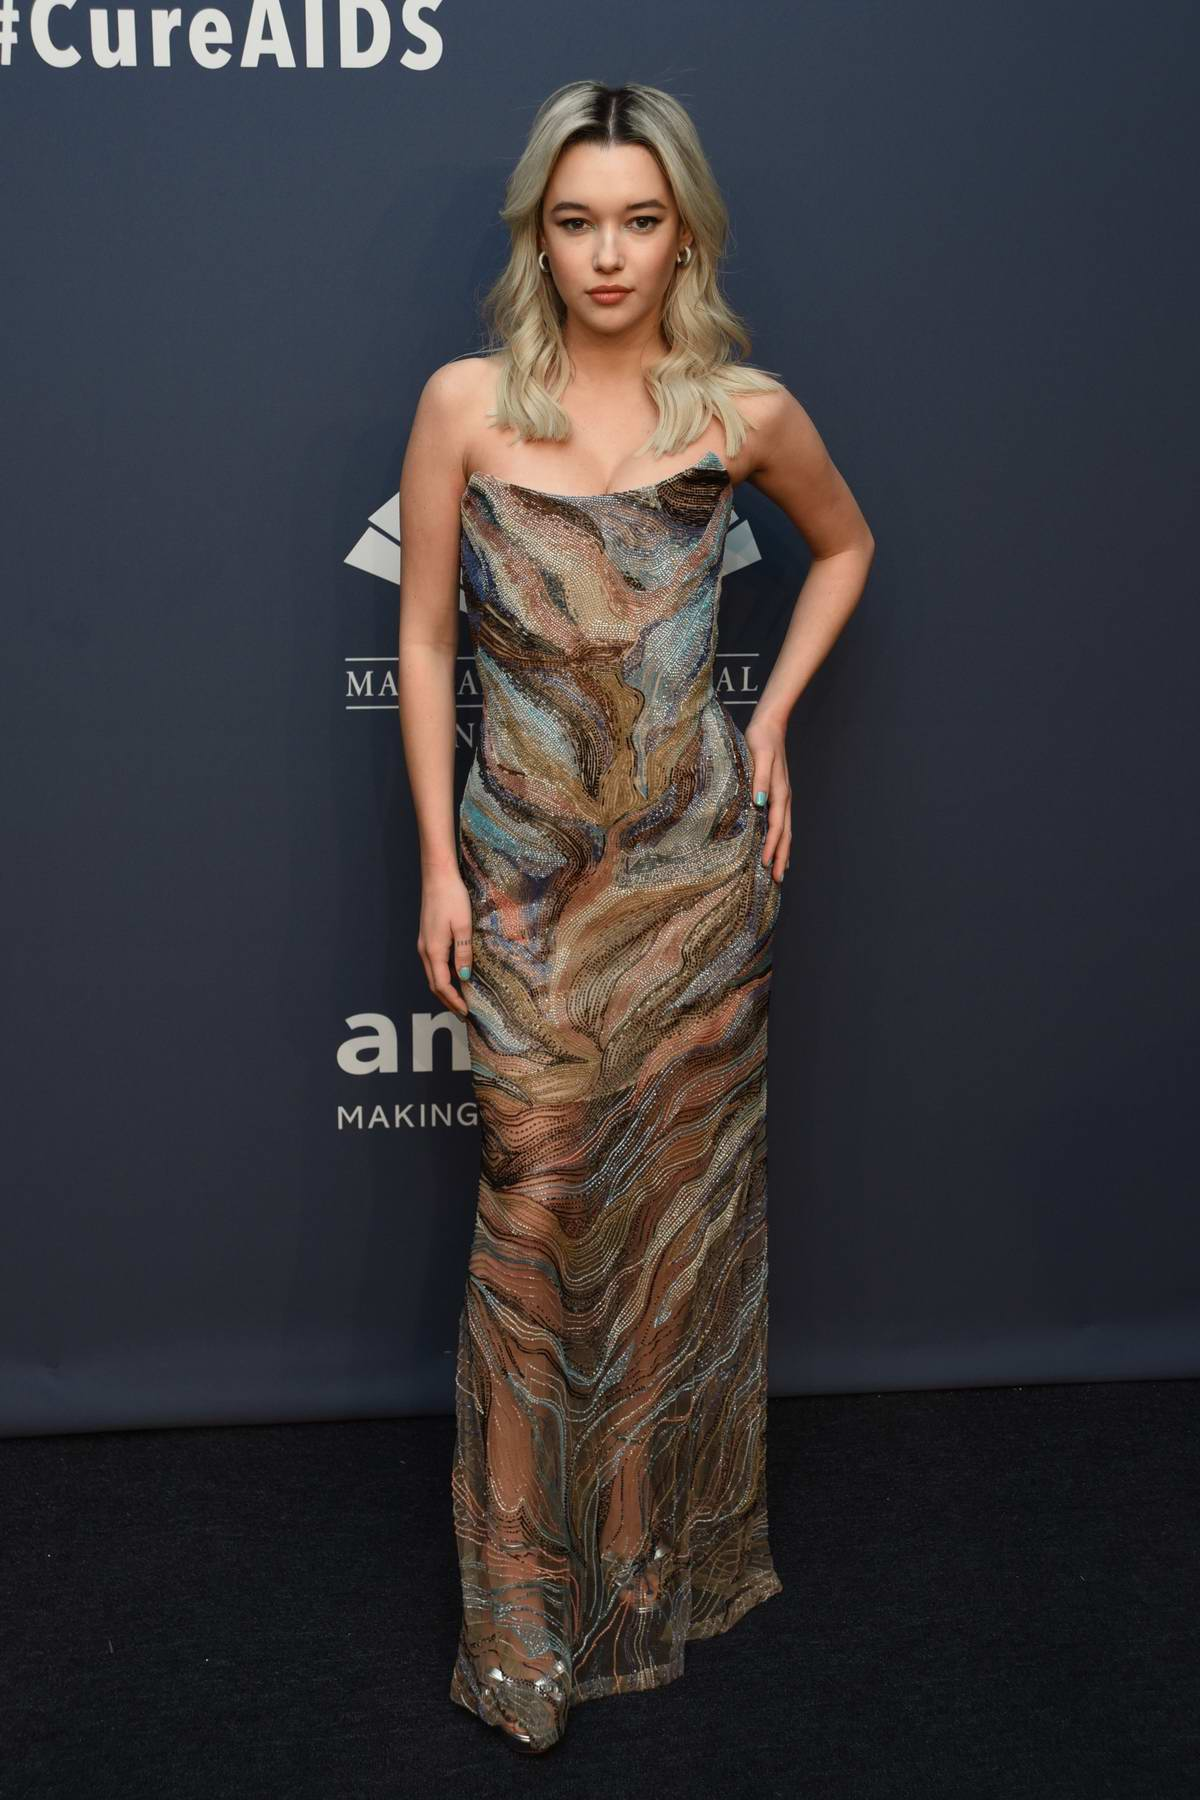 Sarah Snyder attends the 22nd annual amfAR Gala Benefit for AIDS Research in New York City